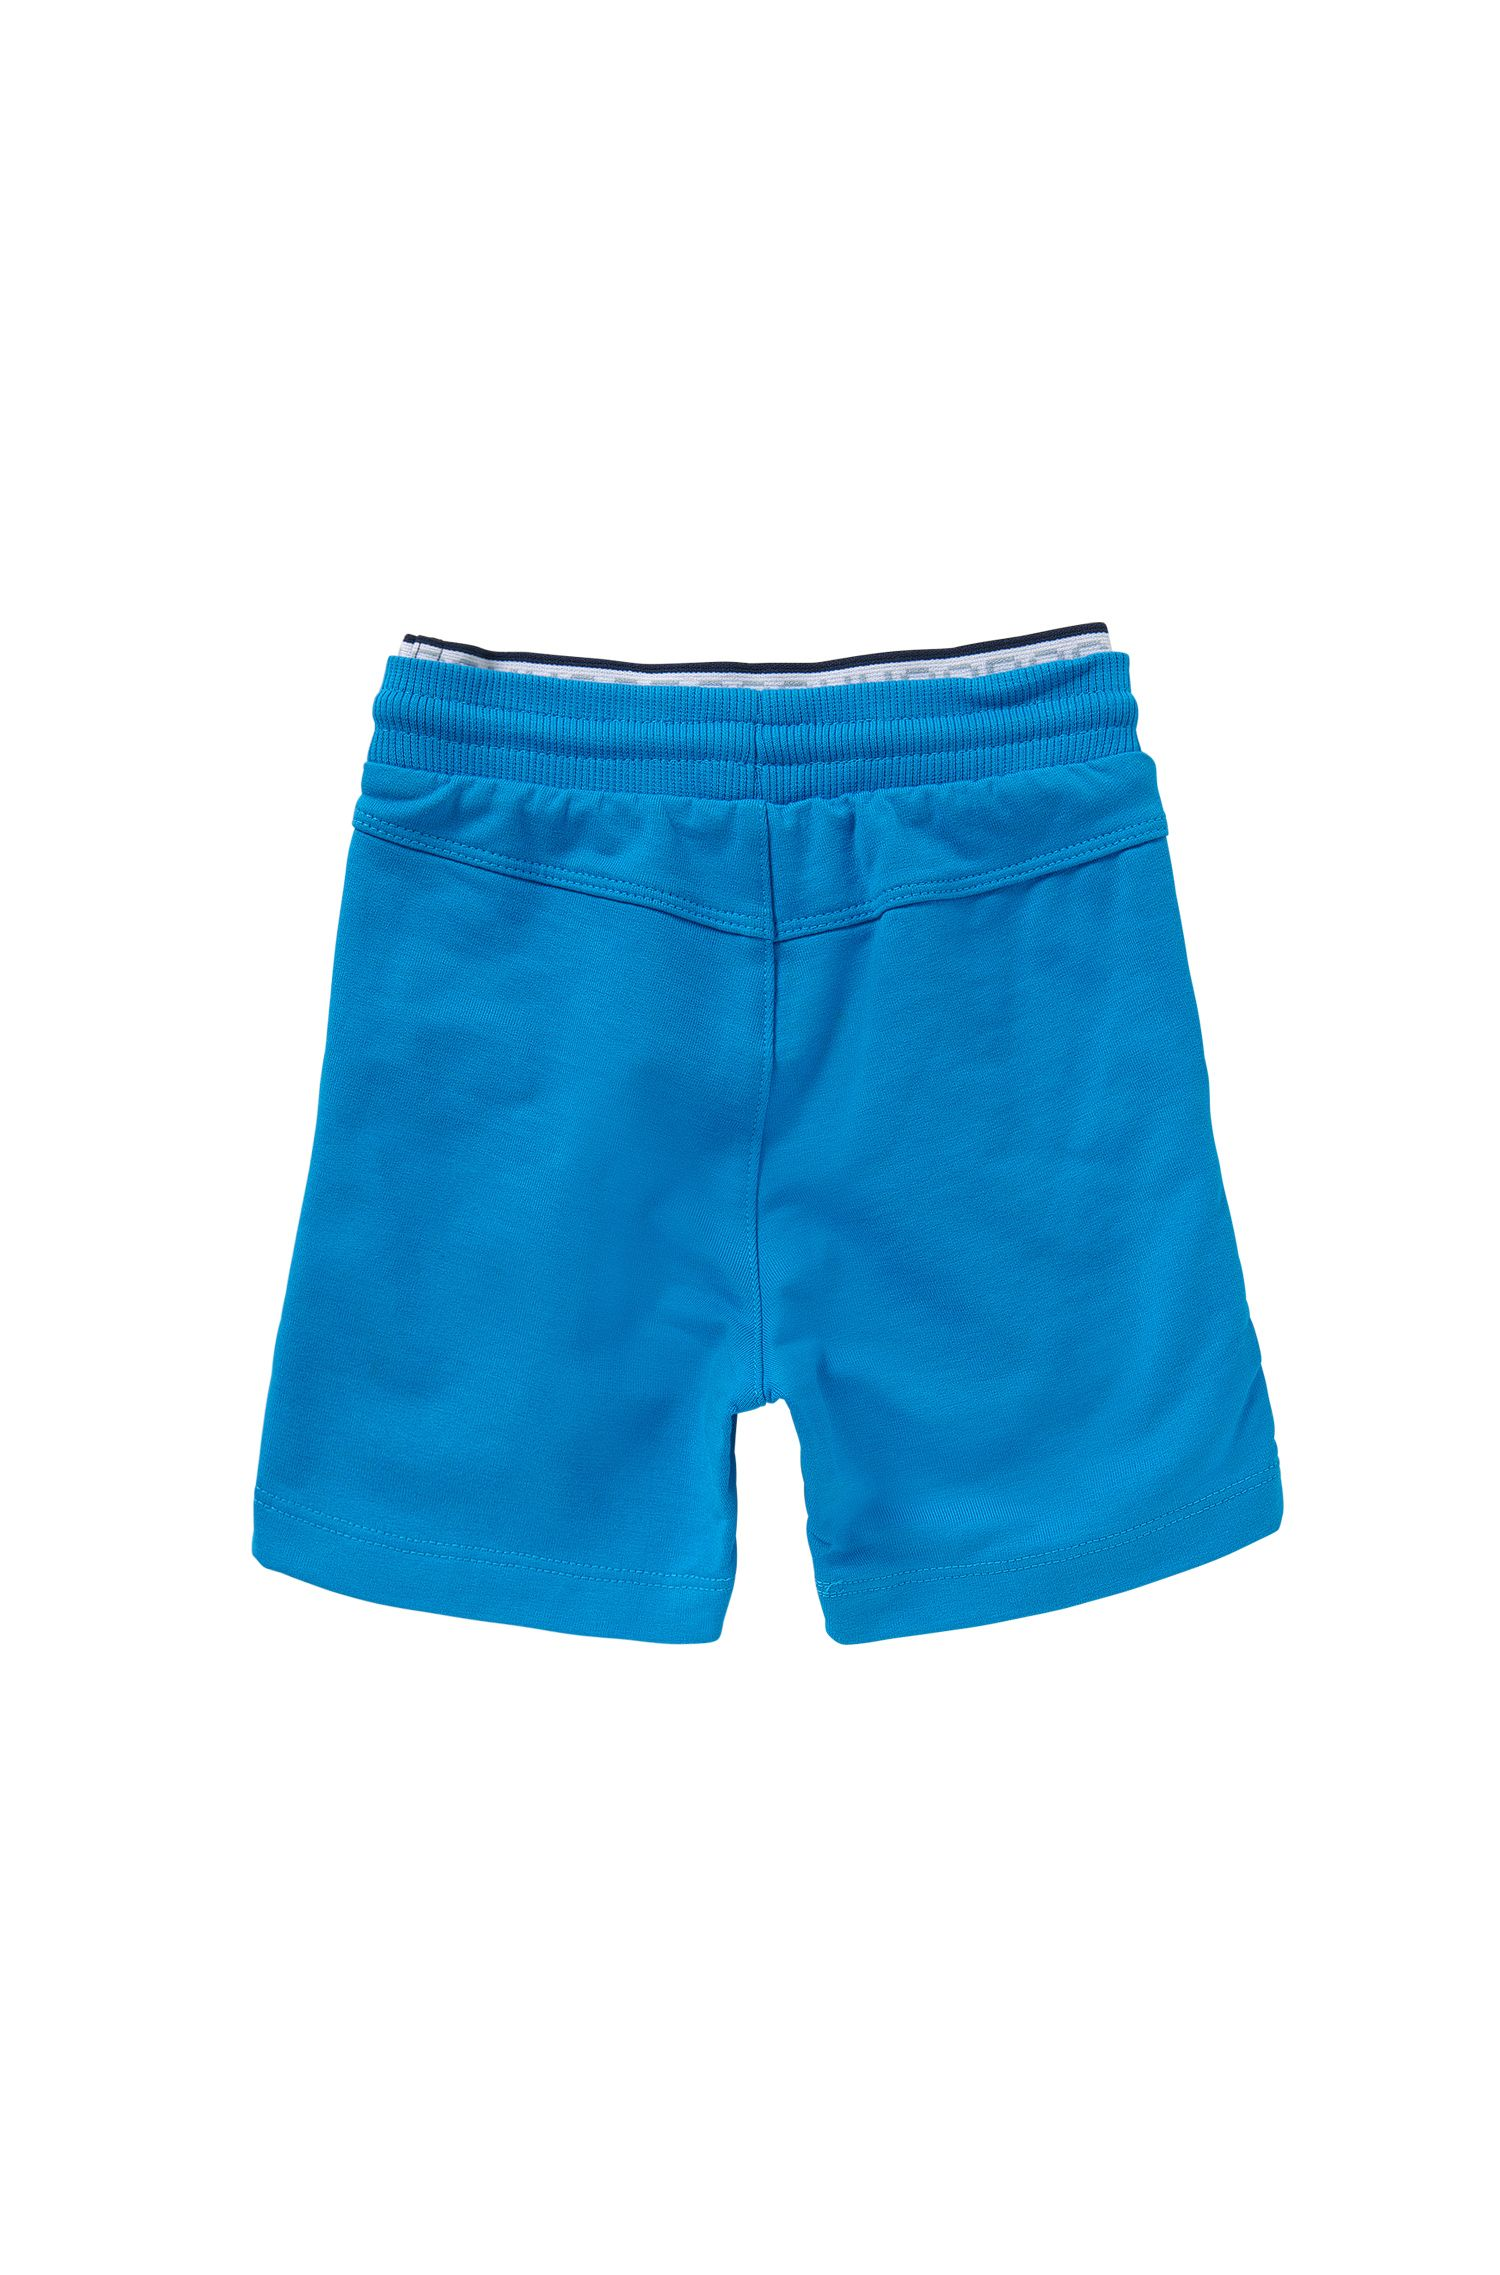 Newborns' shorts in stretch cotton with double-layered waistband: 'J04216'